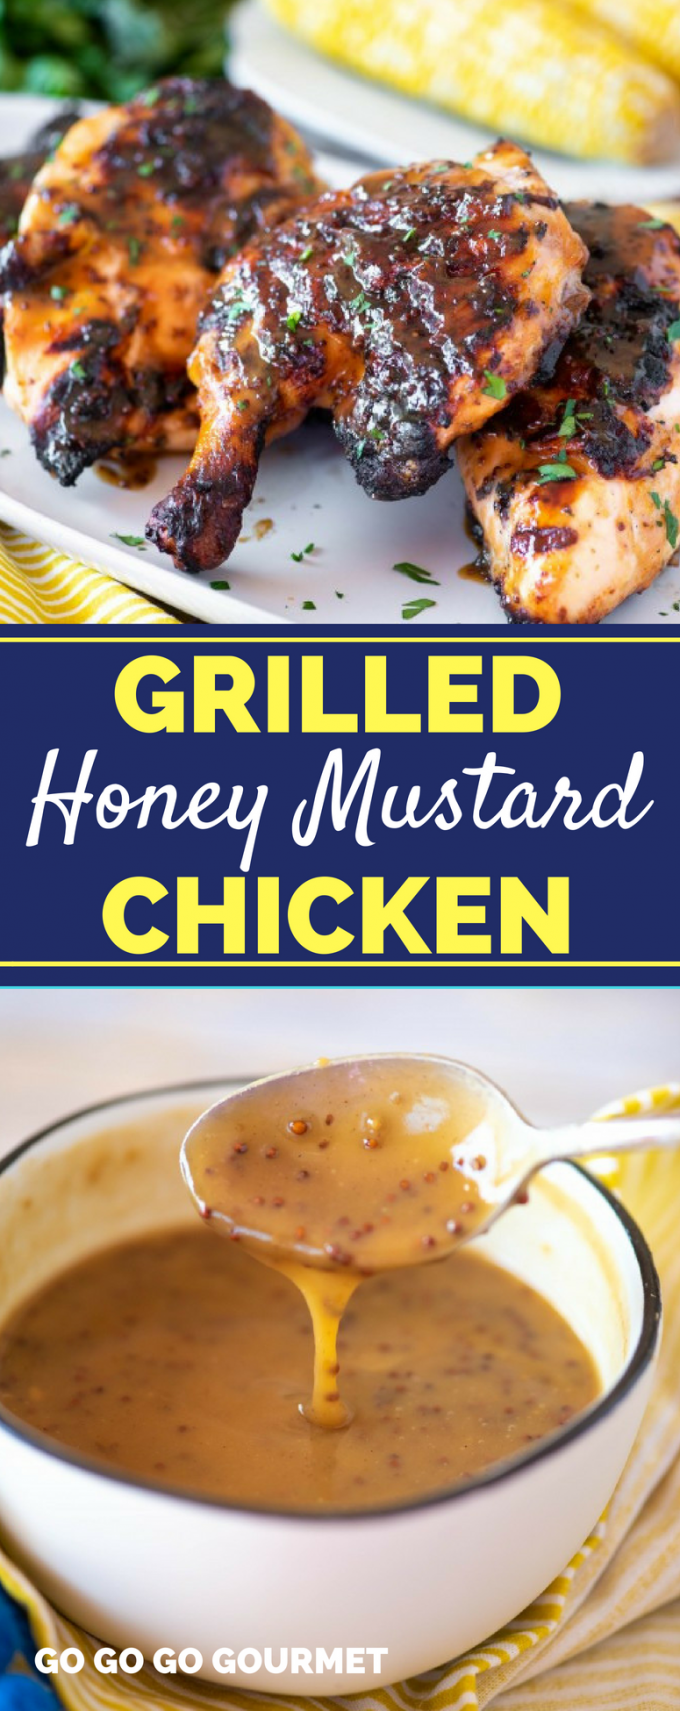 Grilling recipes don't get better than this Honey Mustard Grilled Chicken! Using thighs, breasts or wings in a delicious marinade, this will become one of your favorite healthy meals! #honeymustardchickendinner #honeymustardgrilledchicken #easygrillingrecipes #gogogogourmet via @gogogogourmet